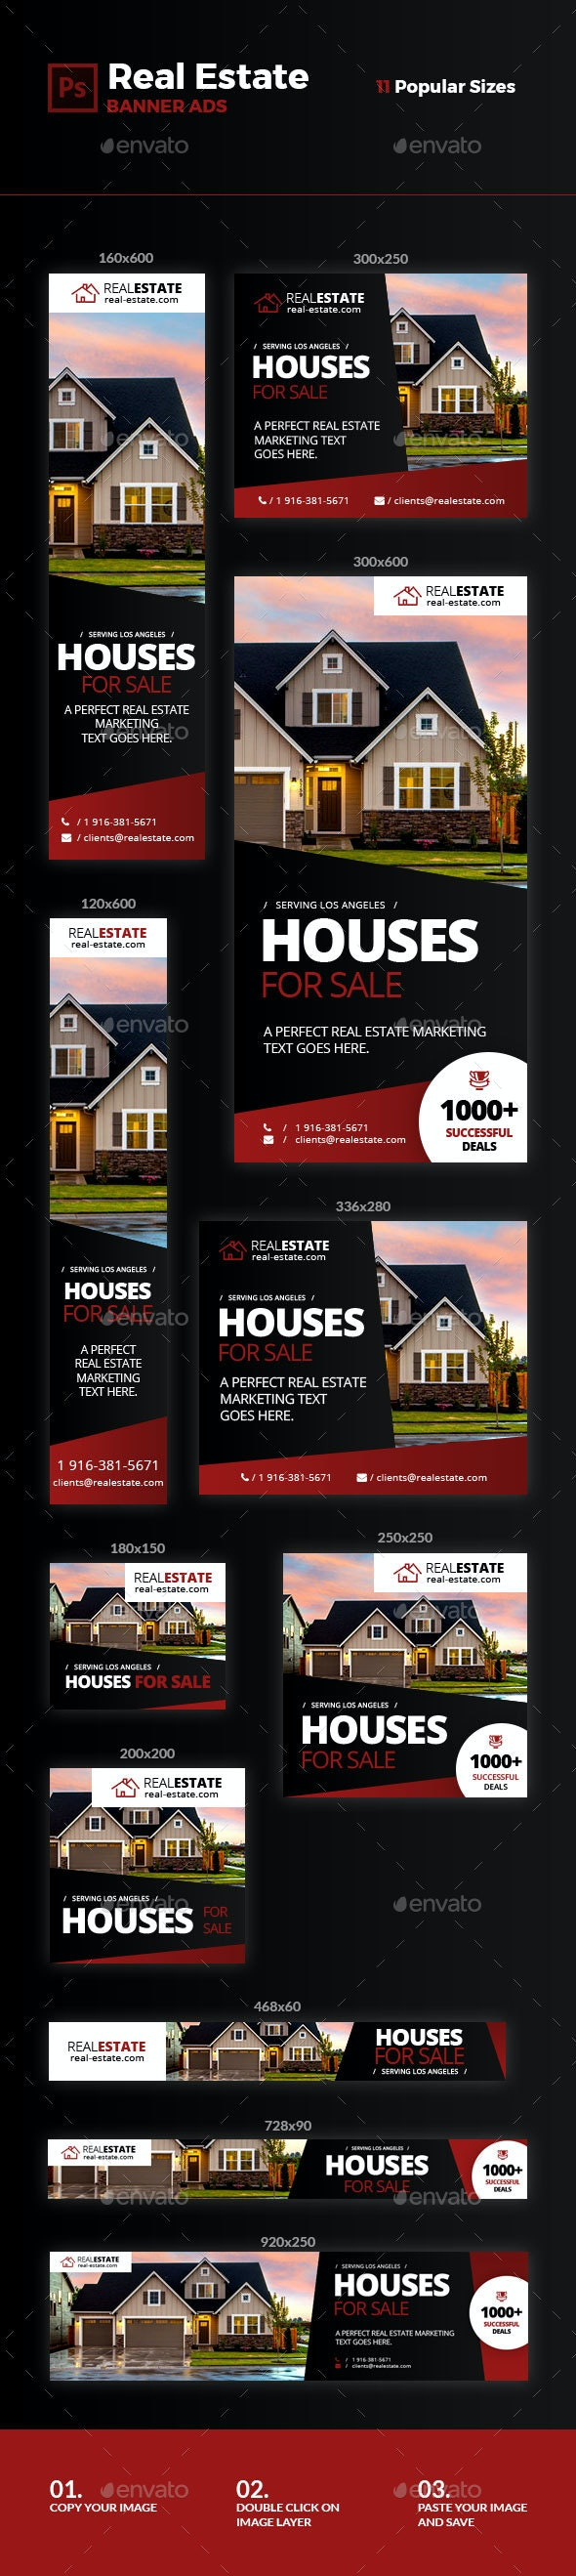 Real Estate Ad Banners #3 - Banners & Ads Web Elements